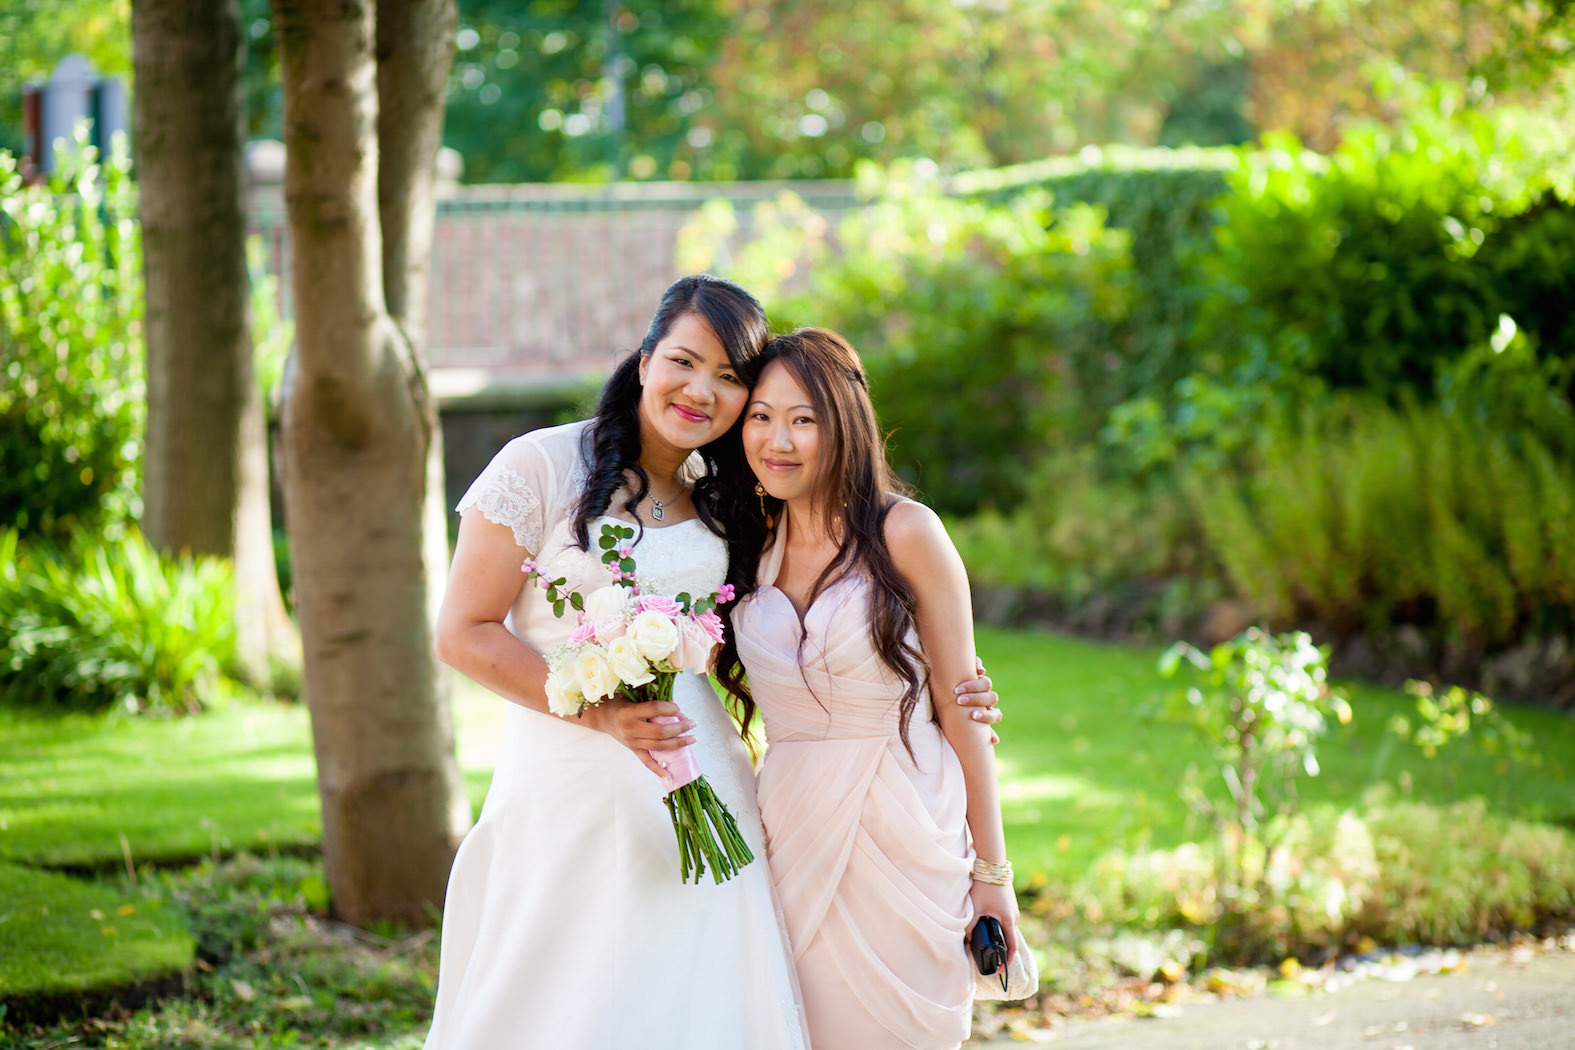 vsfoto-asian-weddings-37